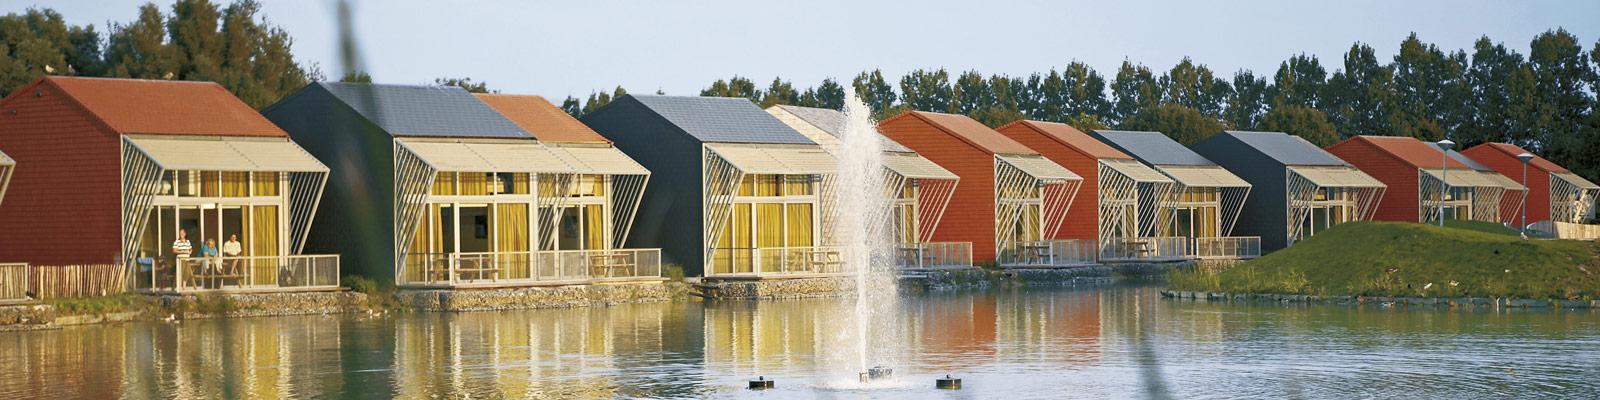 Holiday park De Haan, West-Flanders, Belgium